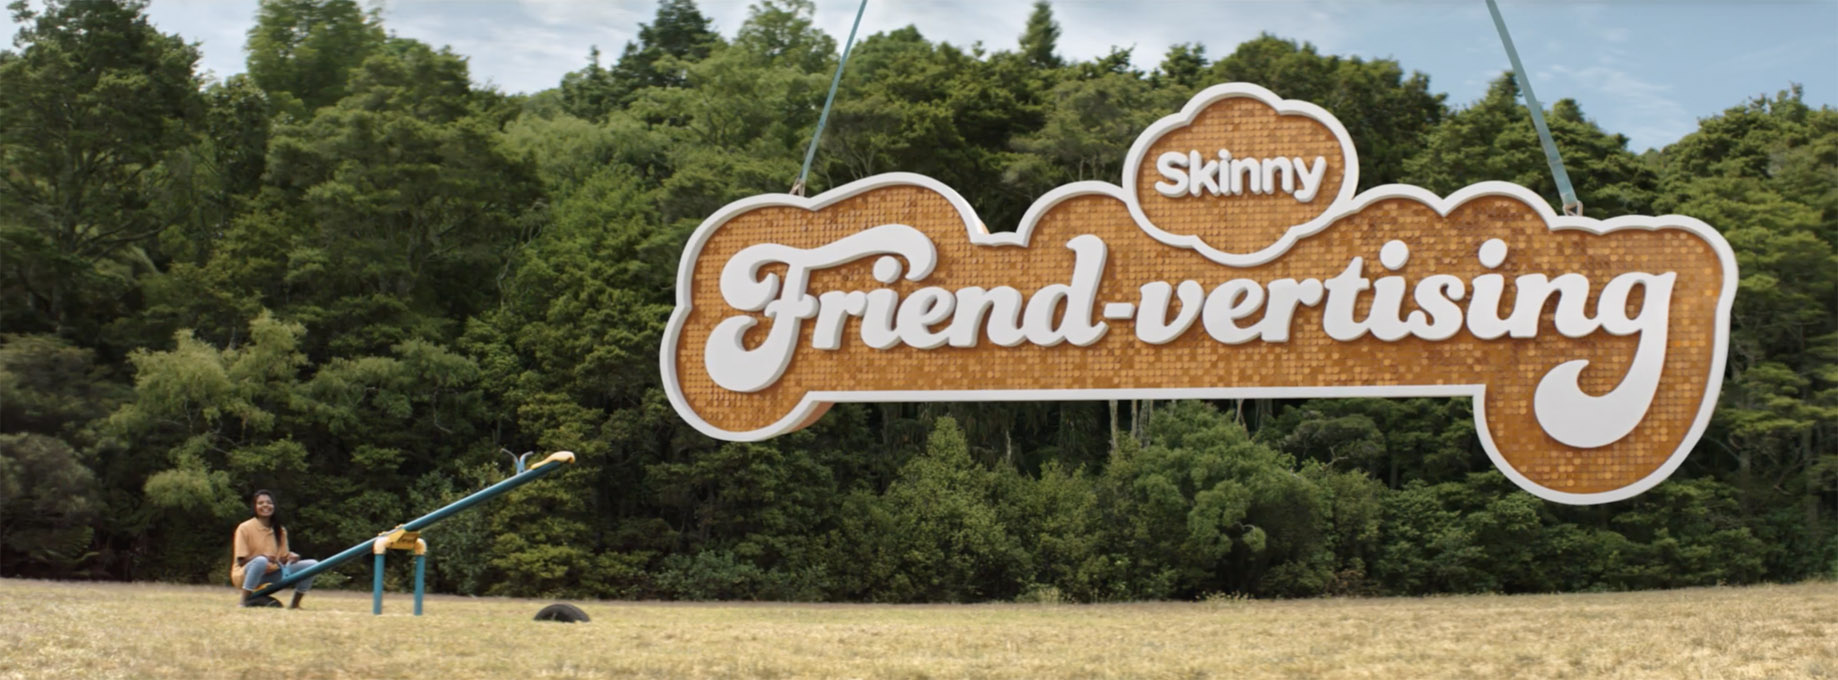 Best Ad of the Day: Skinny 'Friend-vertising' via Colenso BBDO New Zealand